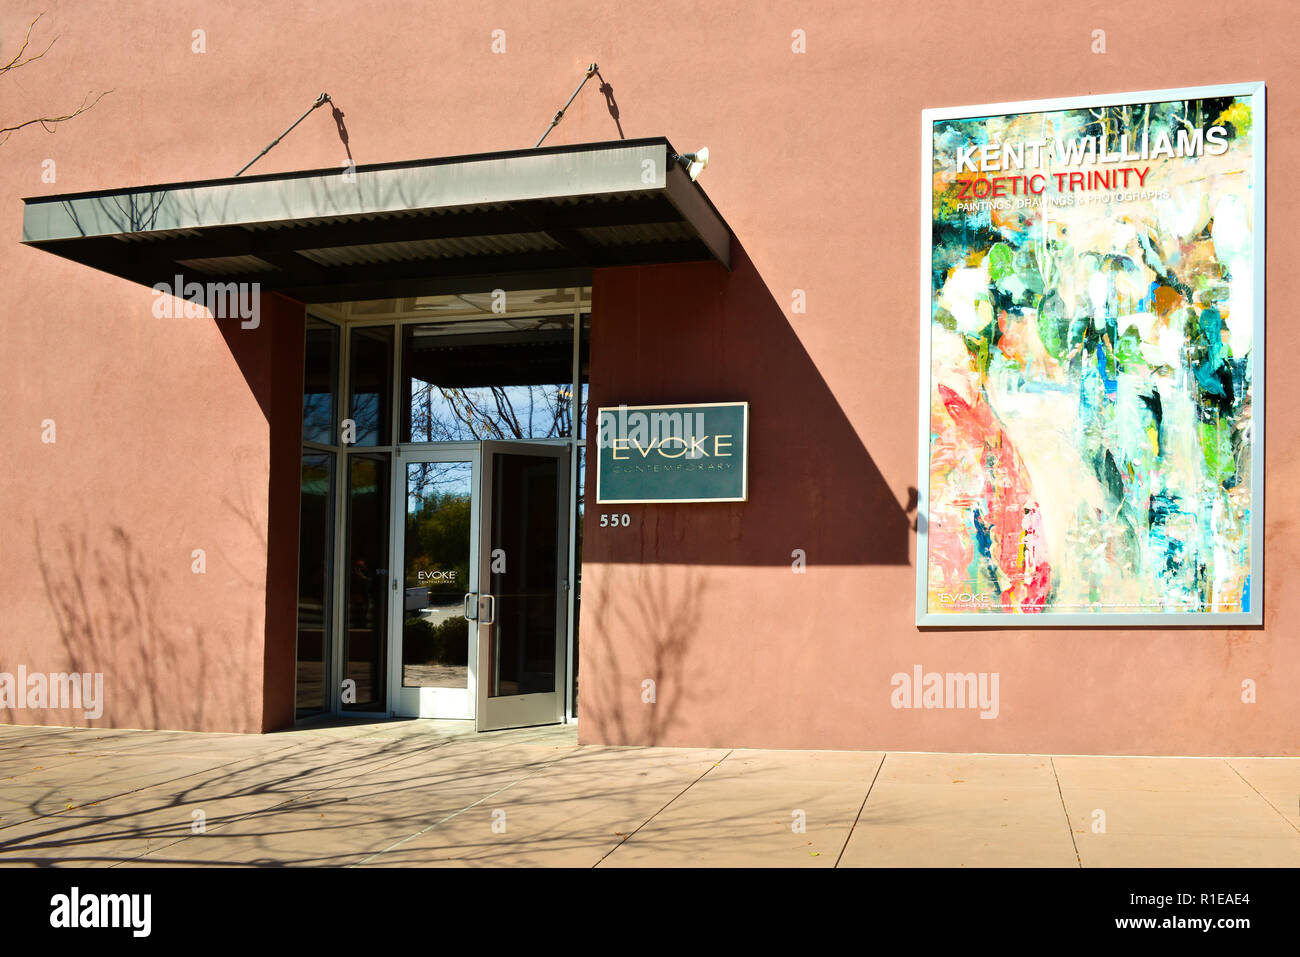 Entrance to the EVOKE art gallery in the Railyard arts district in Santa Fe, NM, USA - Stock Image